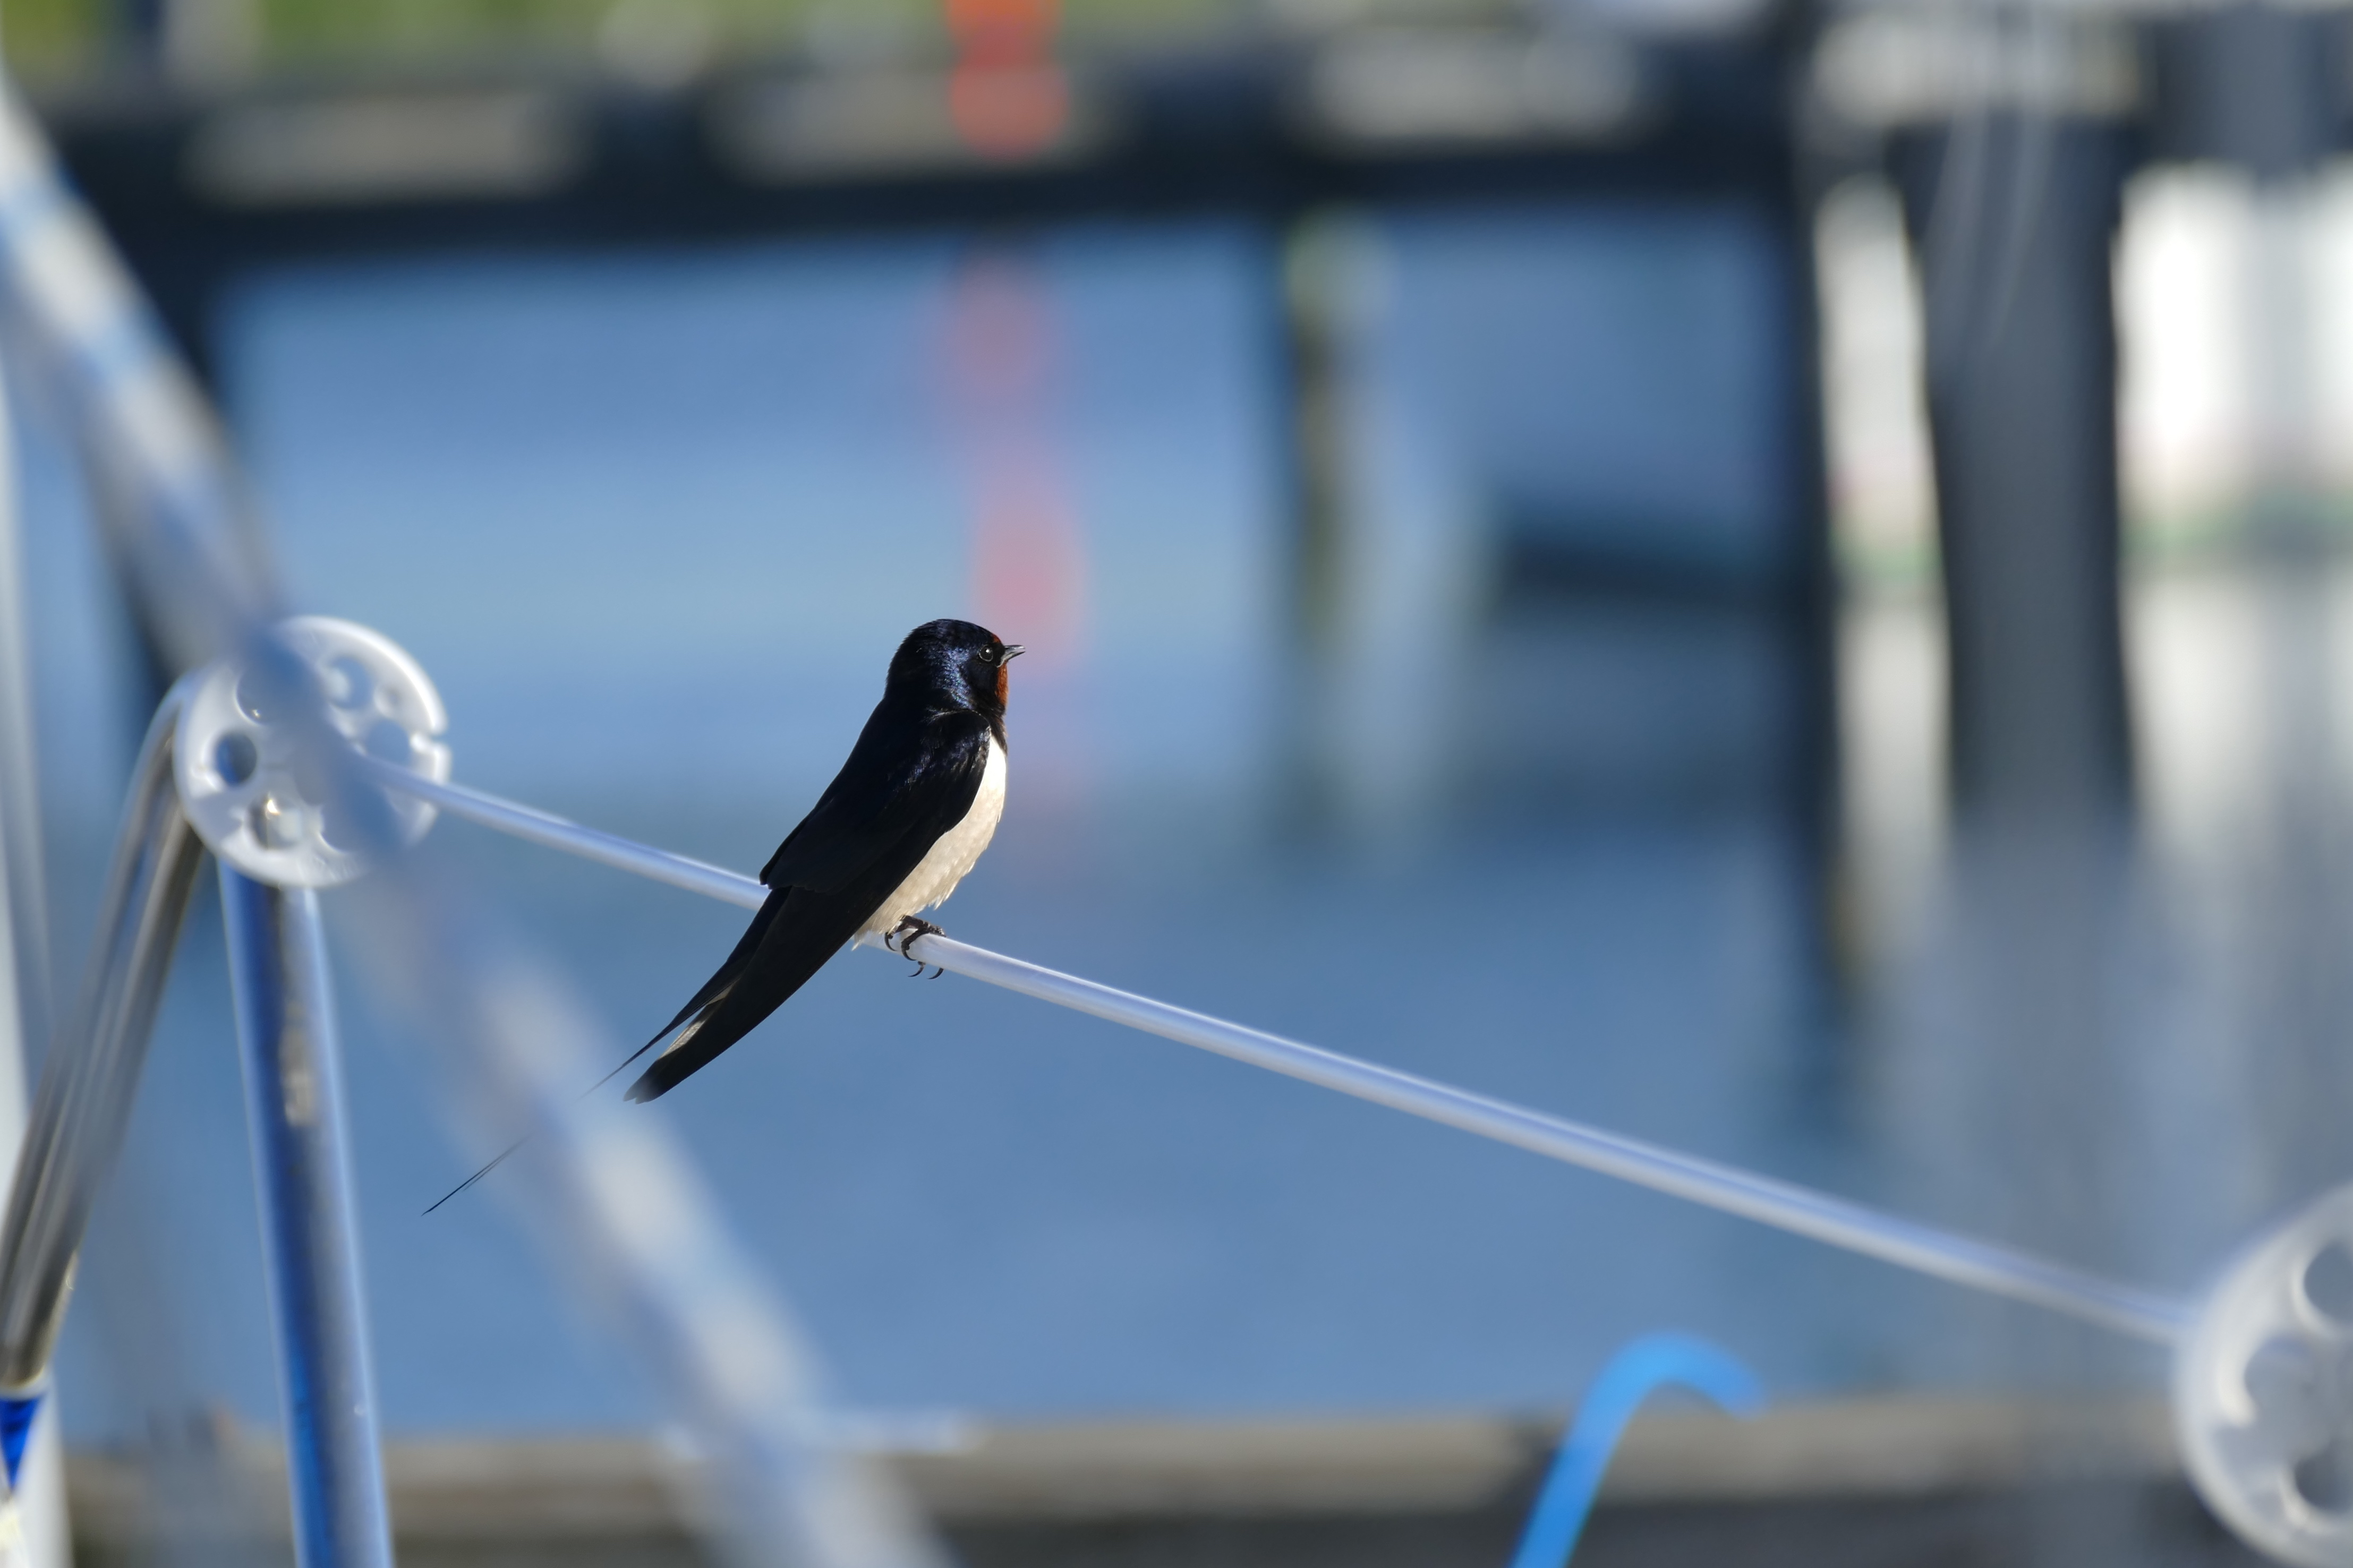 Barn swallow on railing